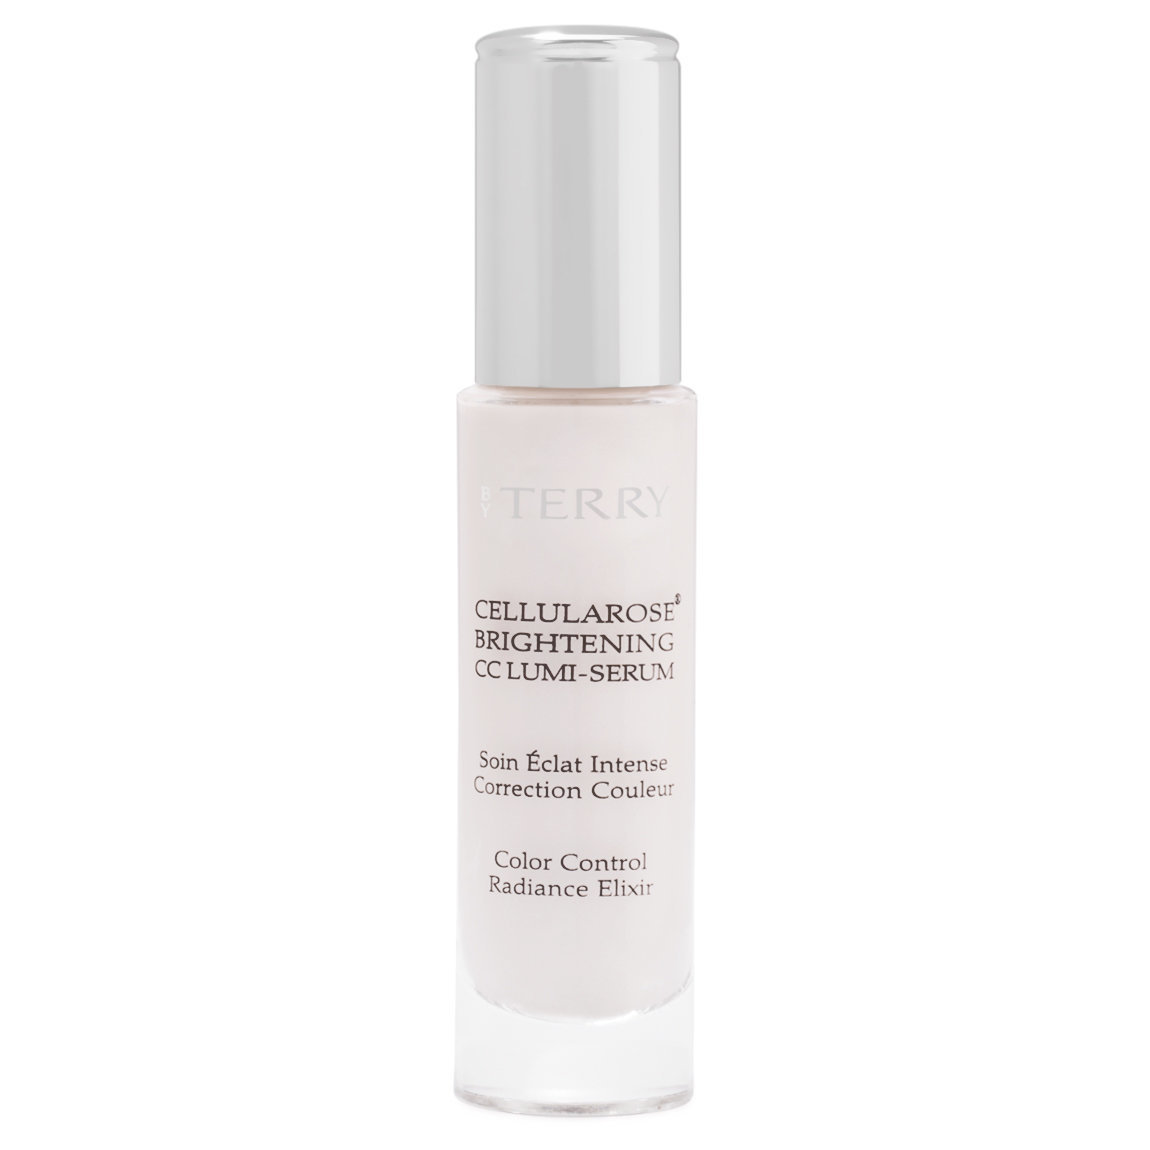 BY TERRY Cellularose Brightening CC Lumi-Serum 1 Immaculate Light